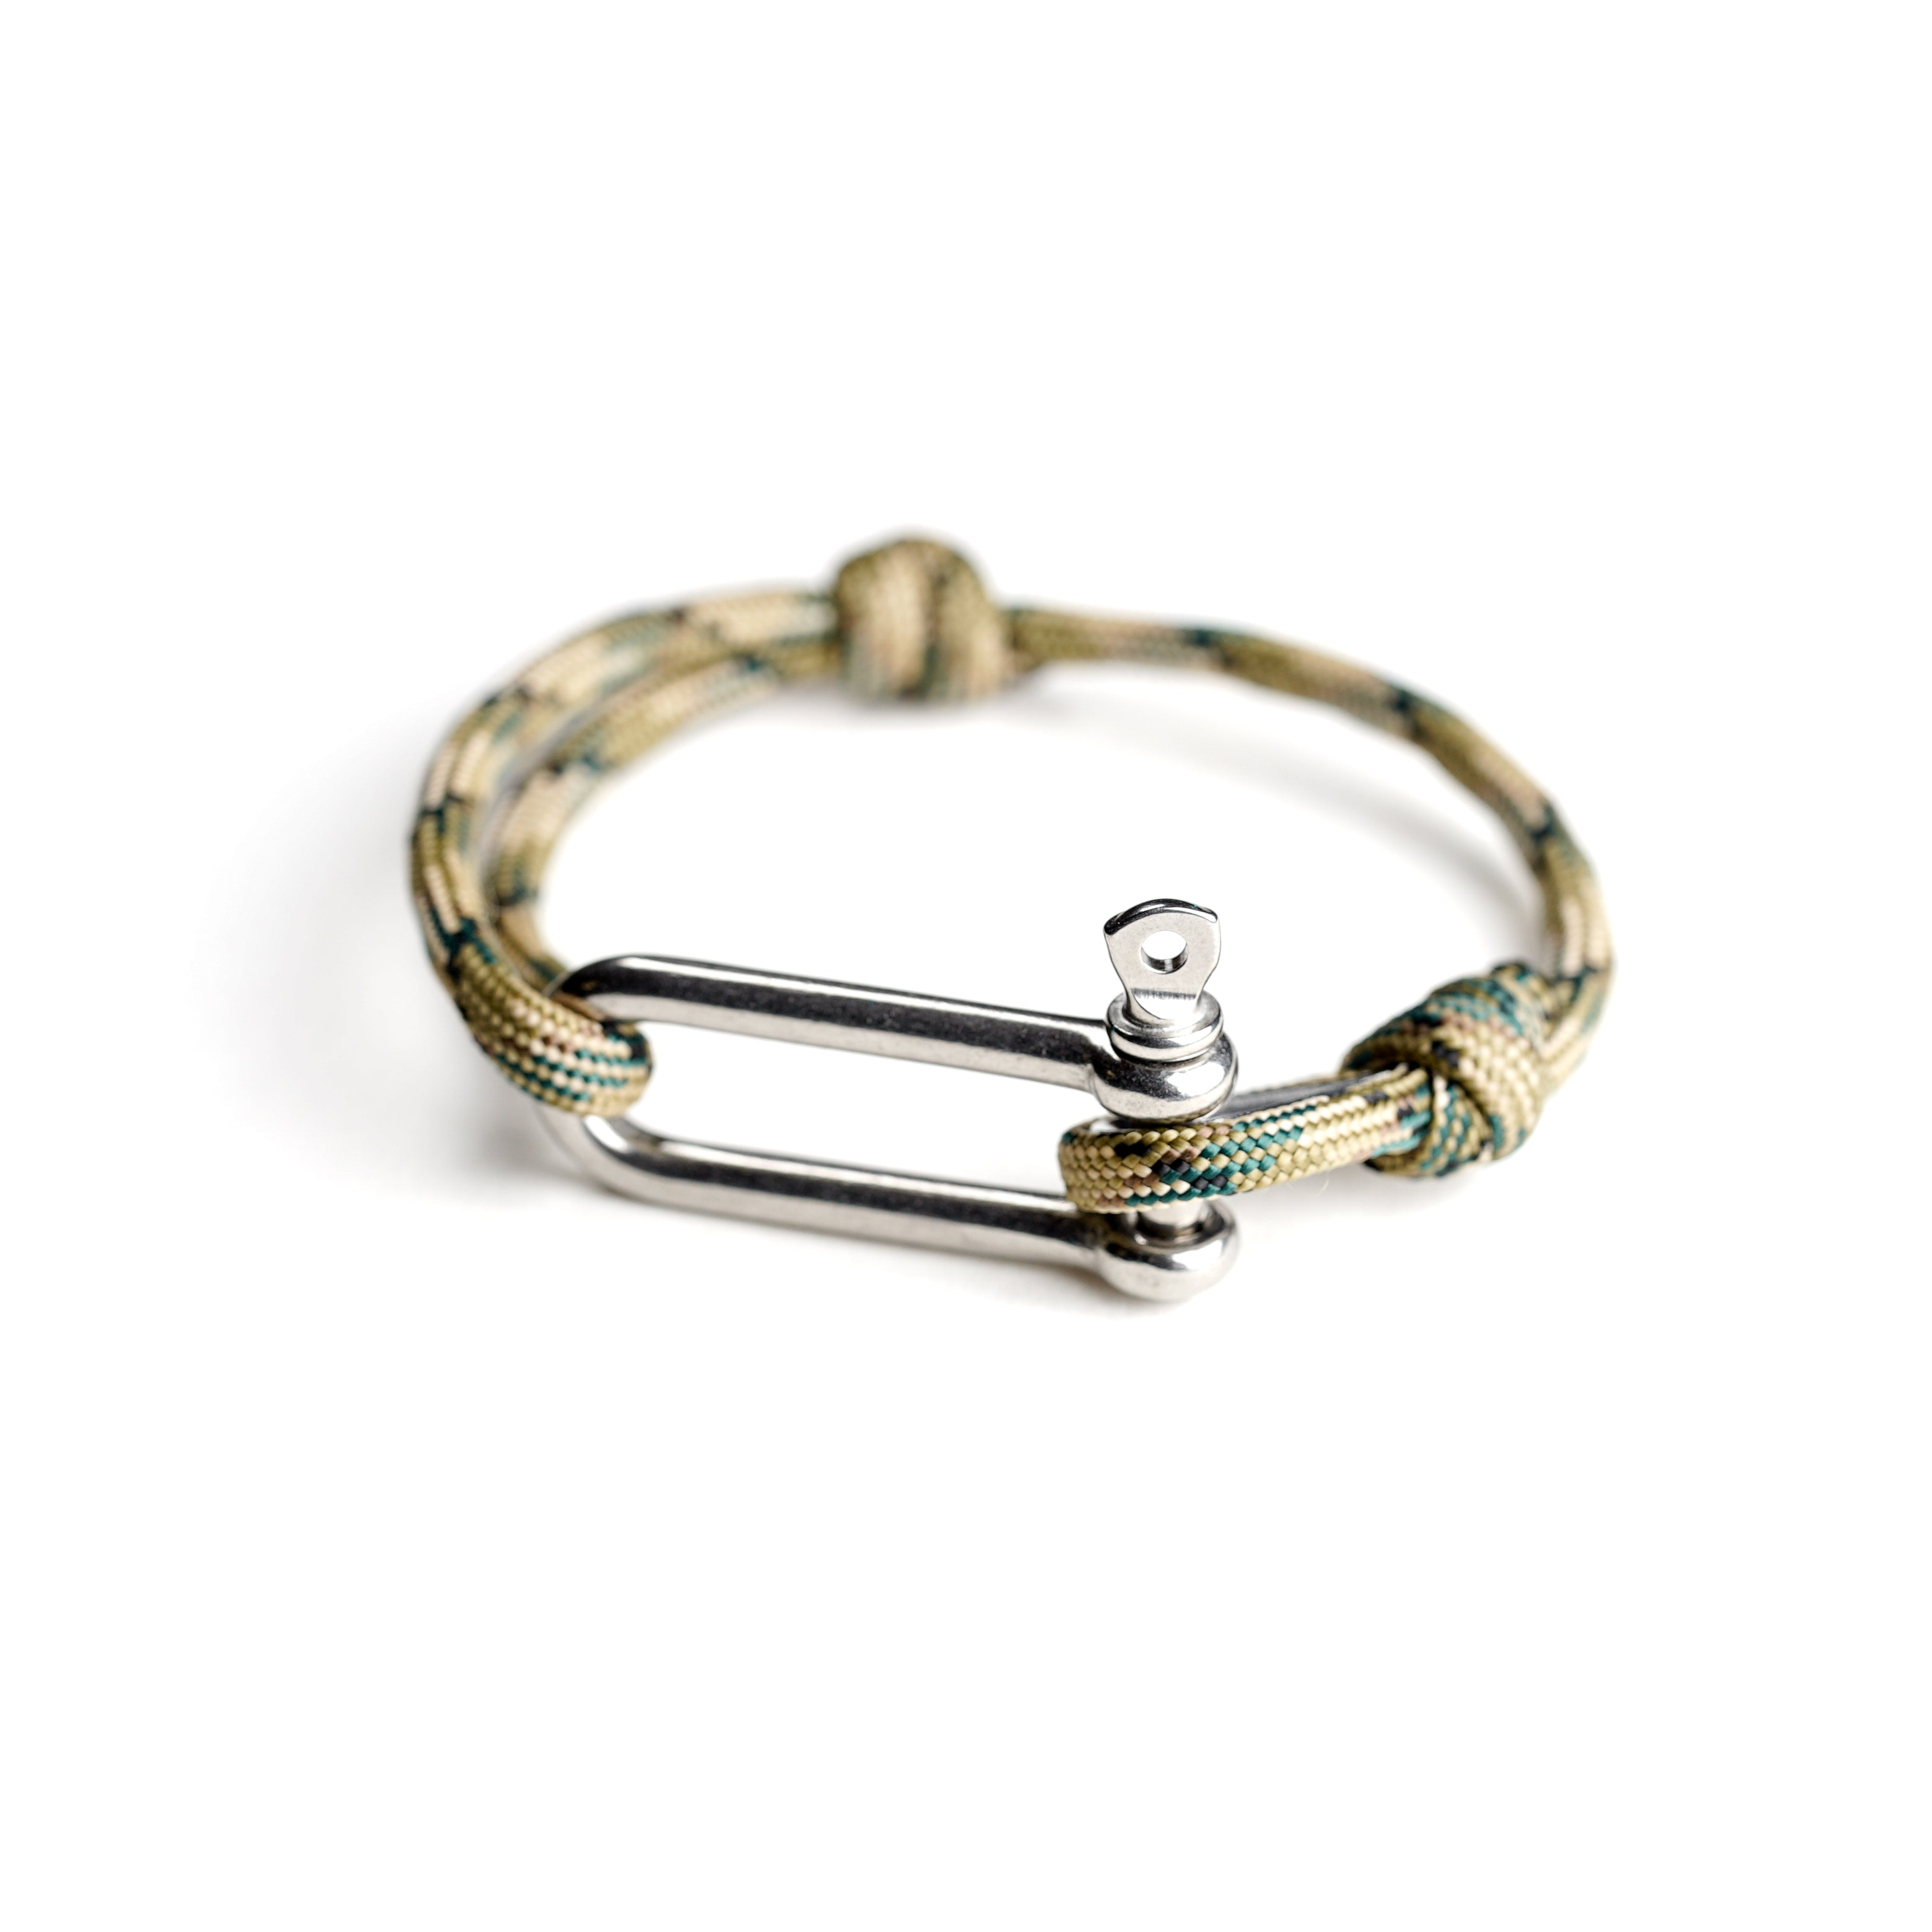 Paracord Nautical Bracelet with Stainless Steel Shackle - Light Green Camo